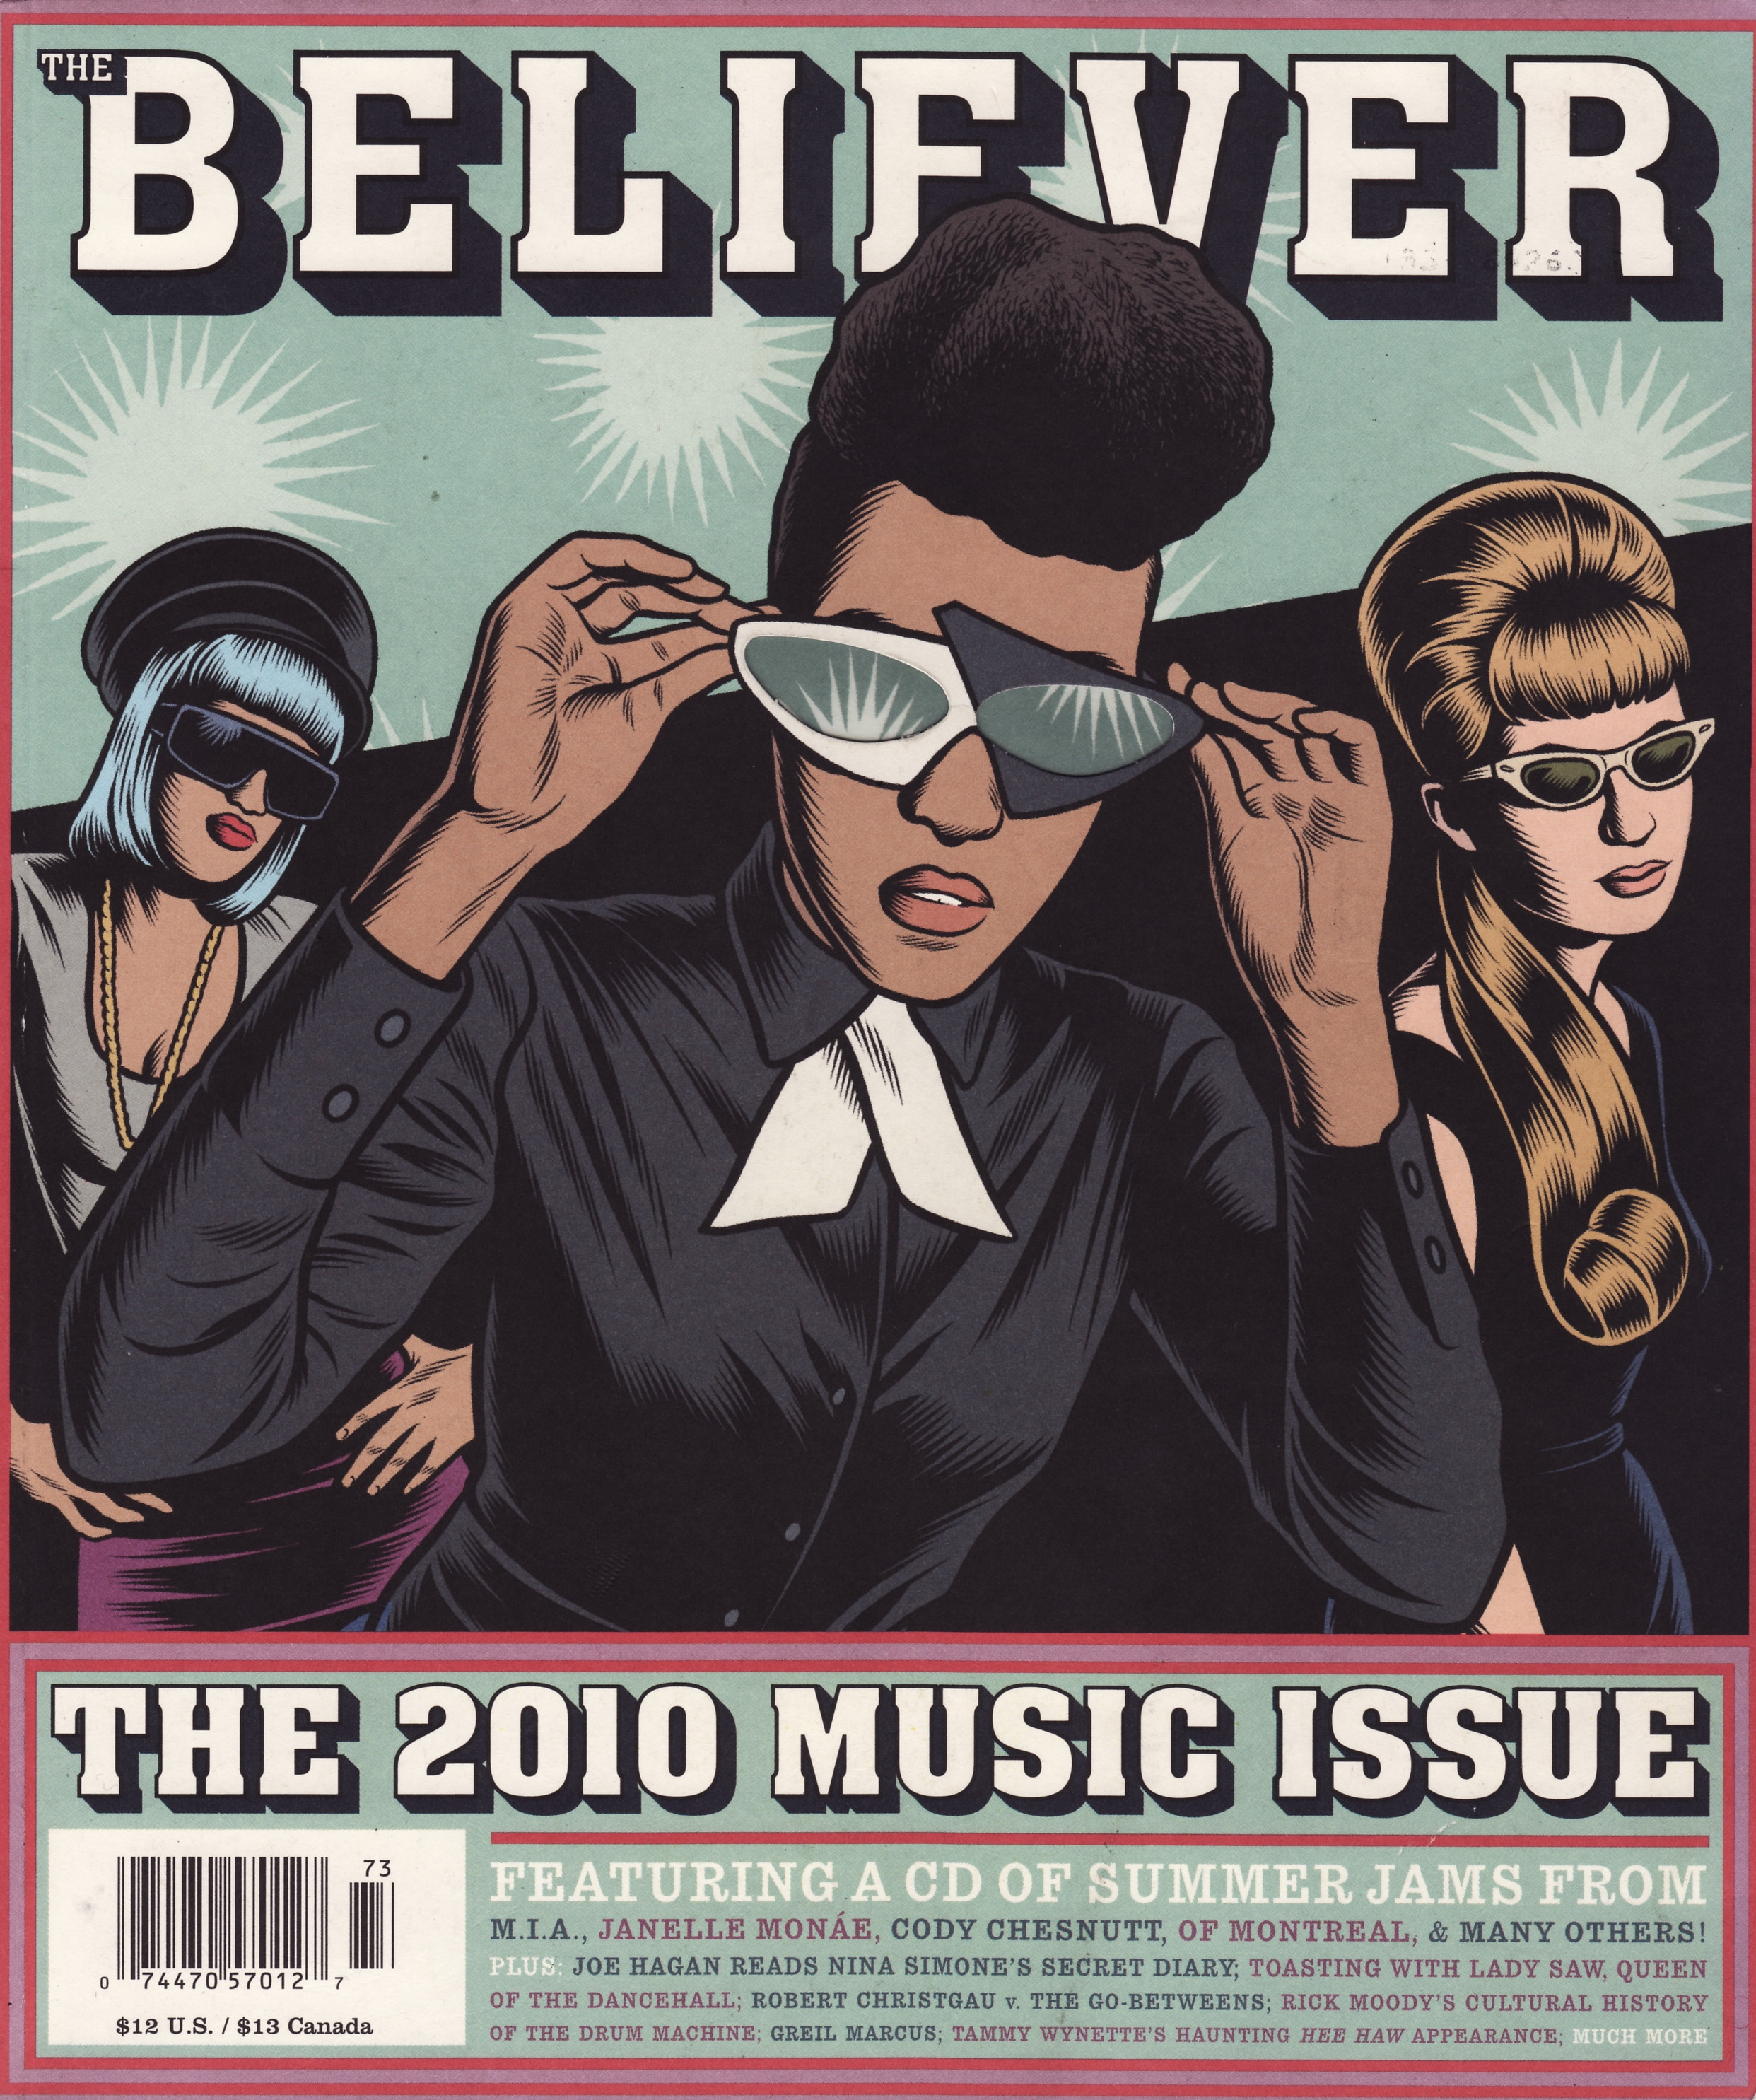 DJ the Believer volume 2 music album